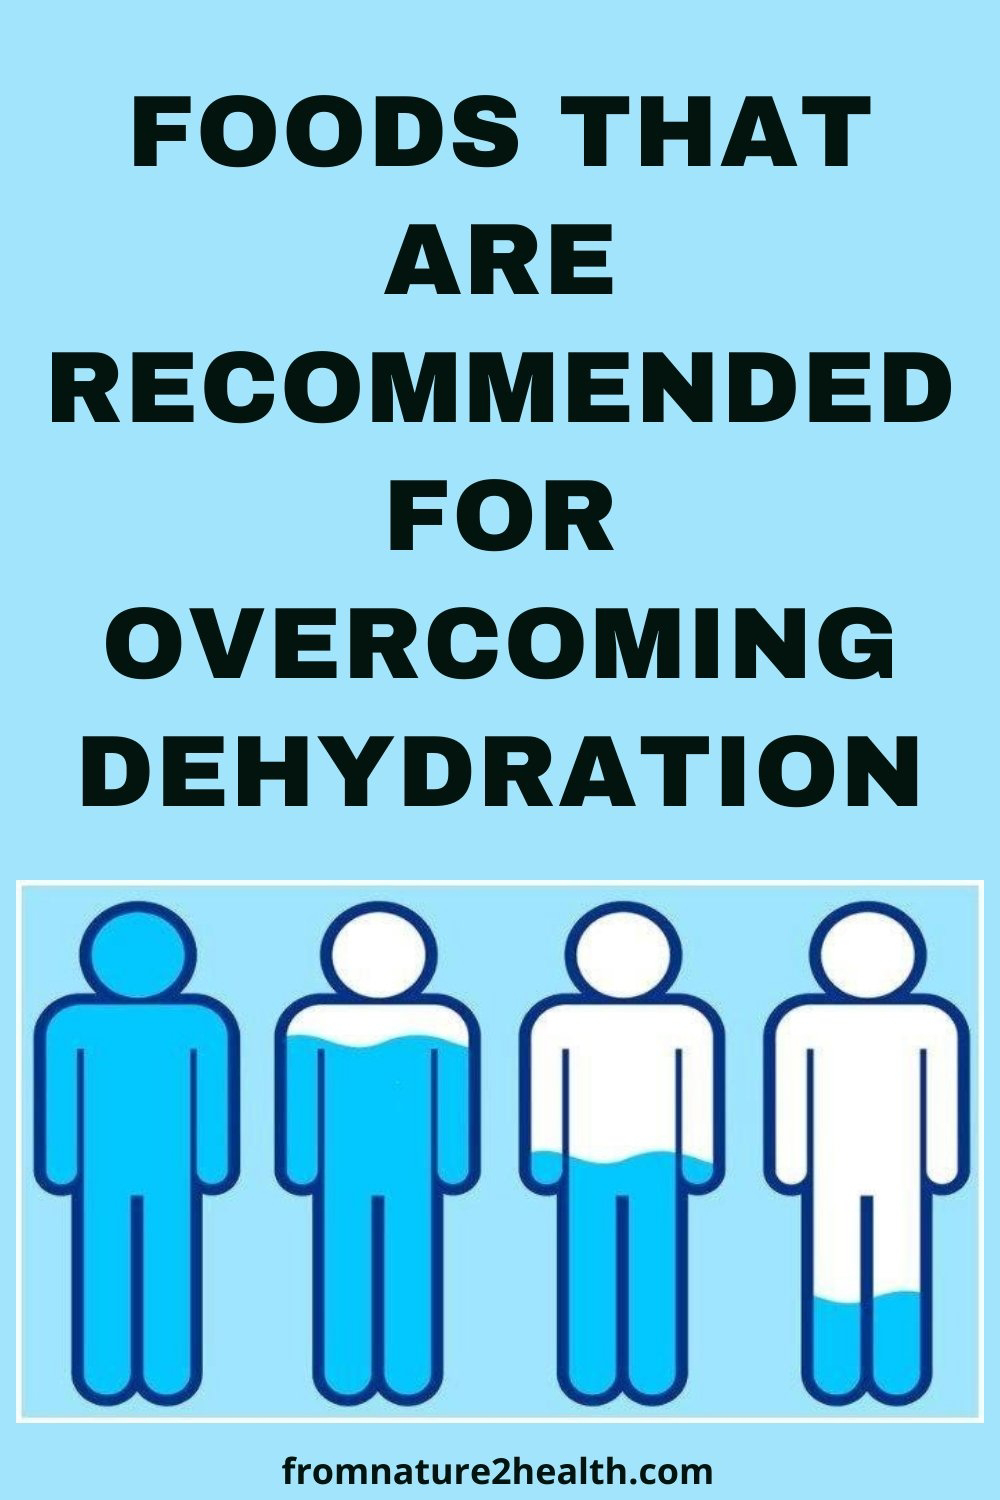 Foods That Are Recommended for Overcoming Dehydration